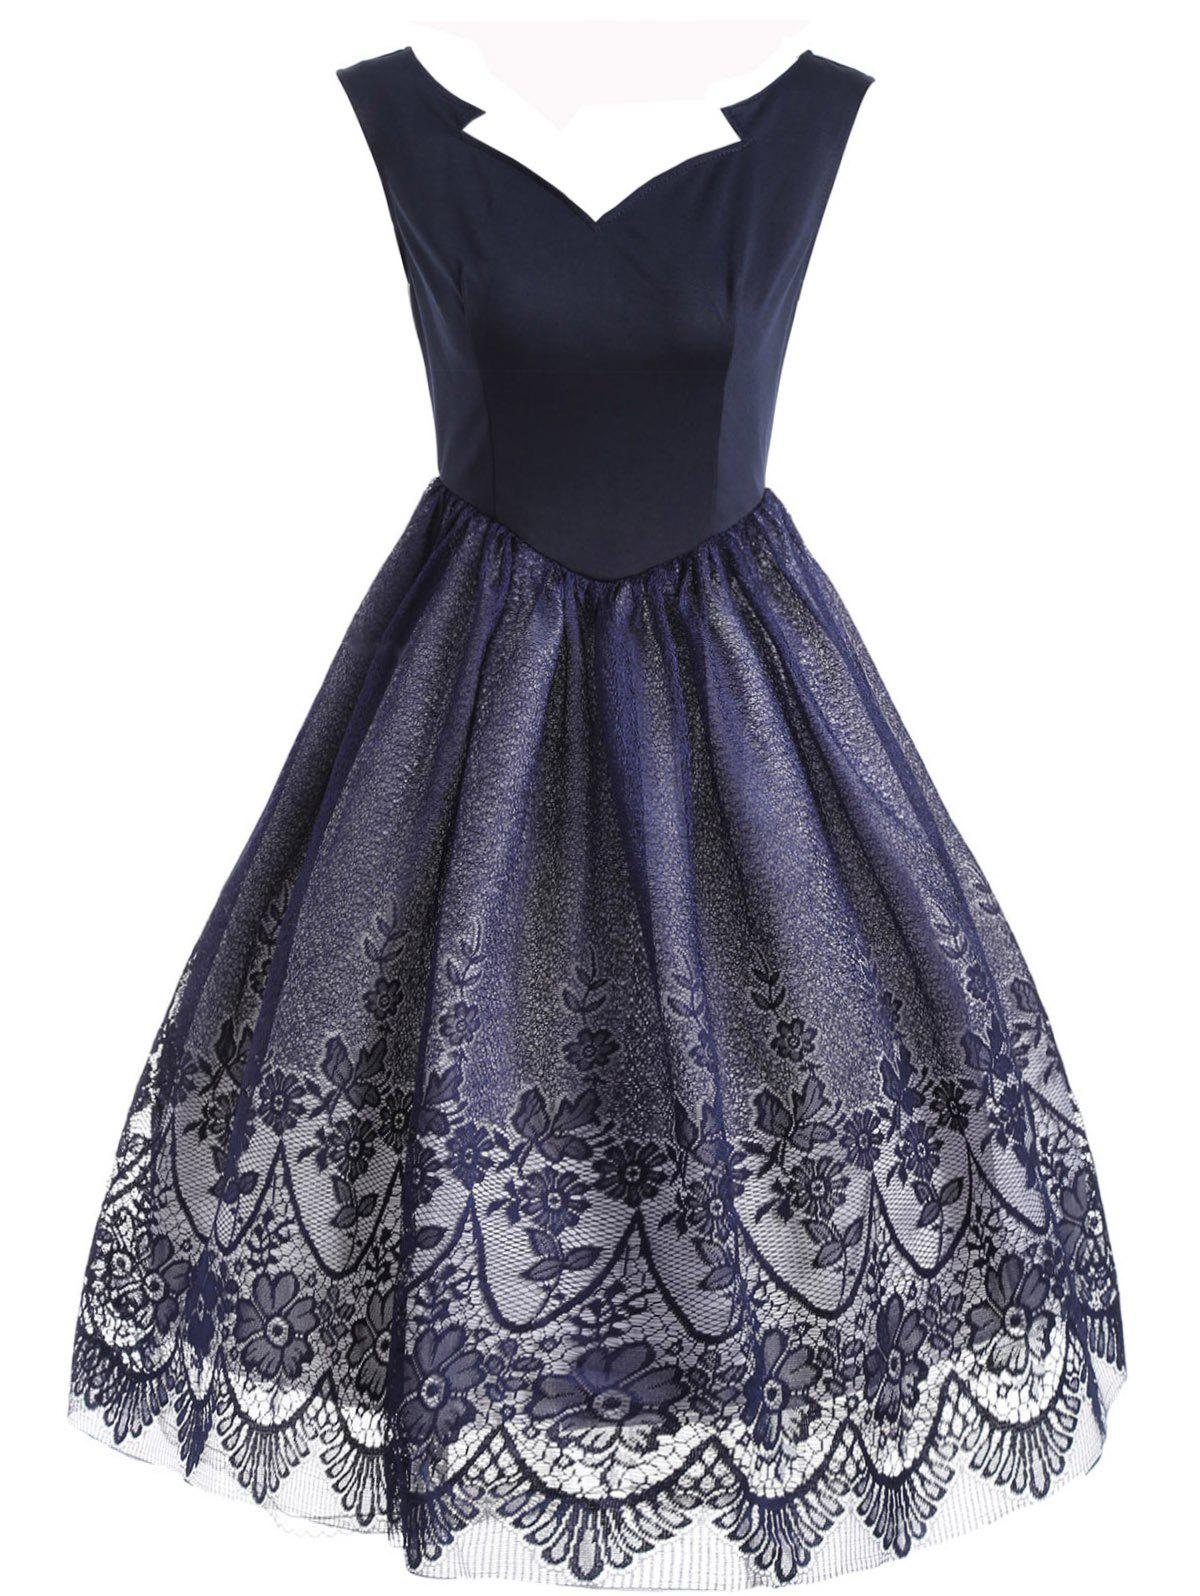 Floral Lace Sleeveless Overlay Vintage Dress - PURPLISH BLUE S